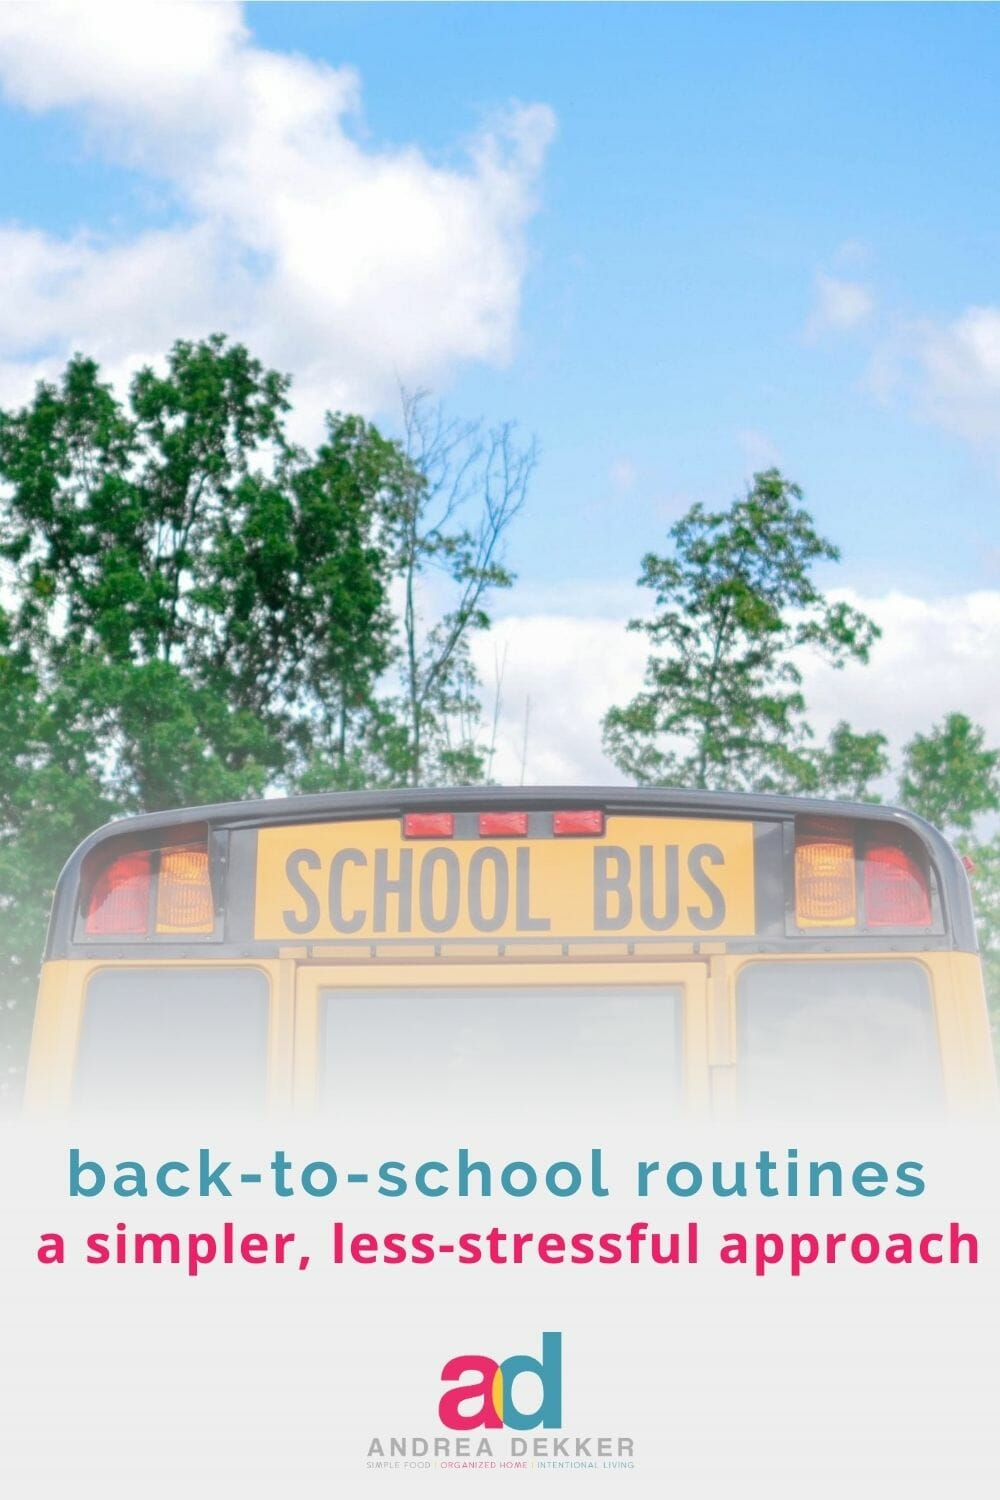 Trying to be optimistic and assume the kids will actually go back to school this fall? If so, I've got some refreshing news to share with that nagging voice in the rule-following part of your brain telling you to dust off your back-to-school routine. via @andreadekker